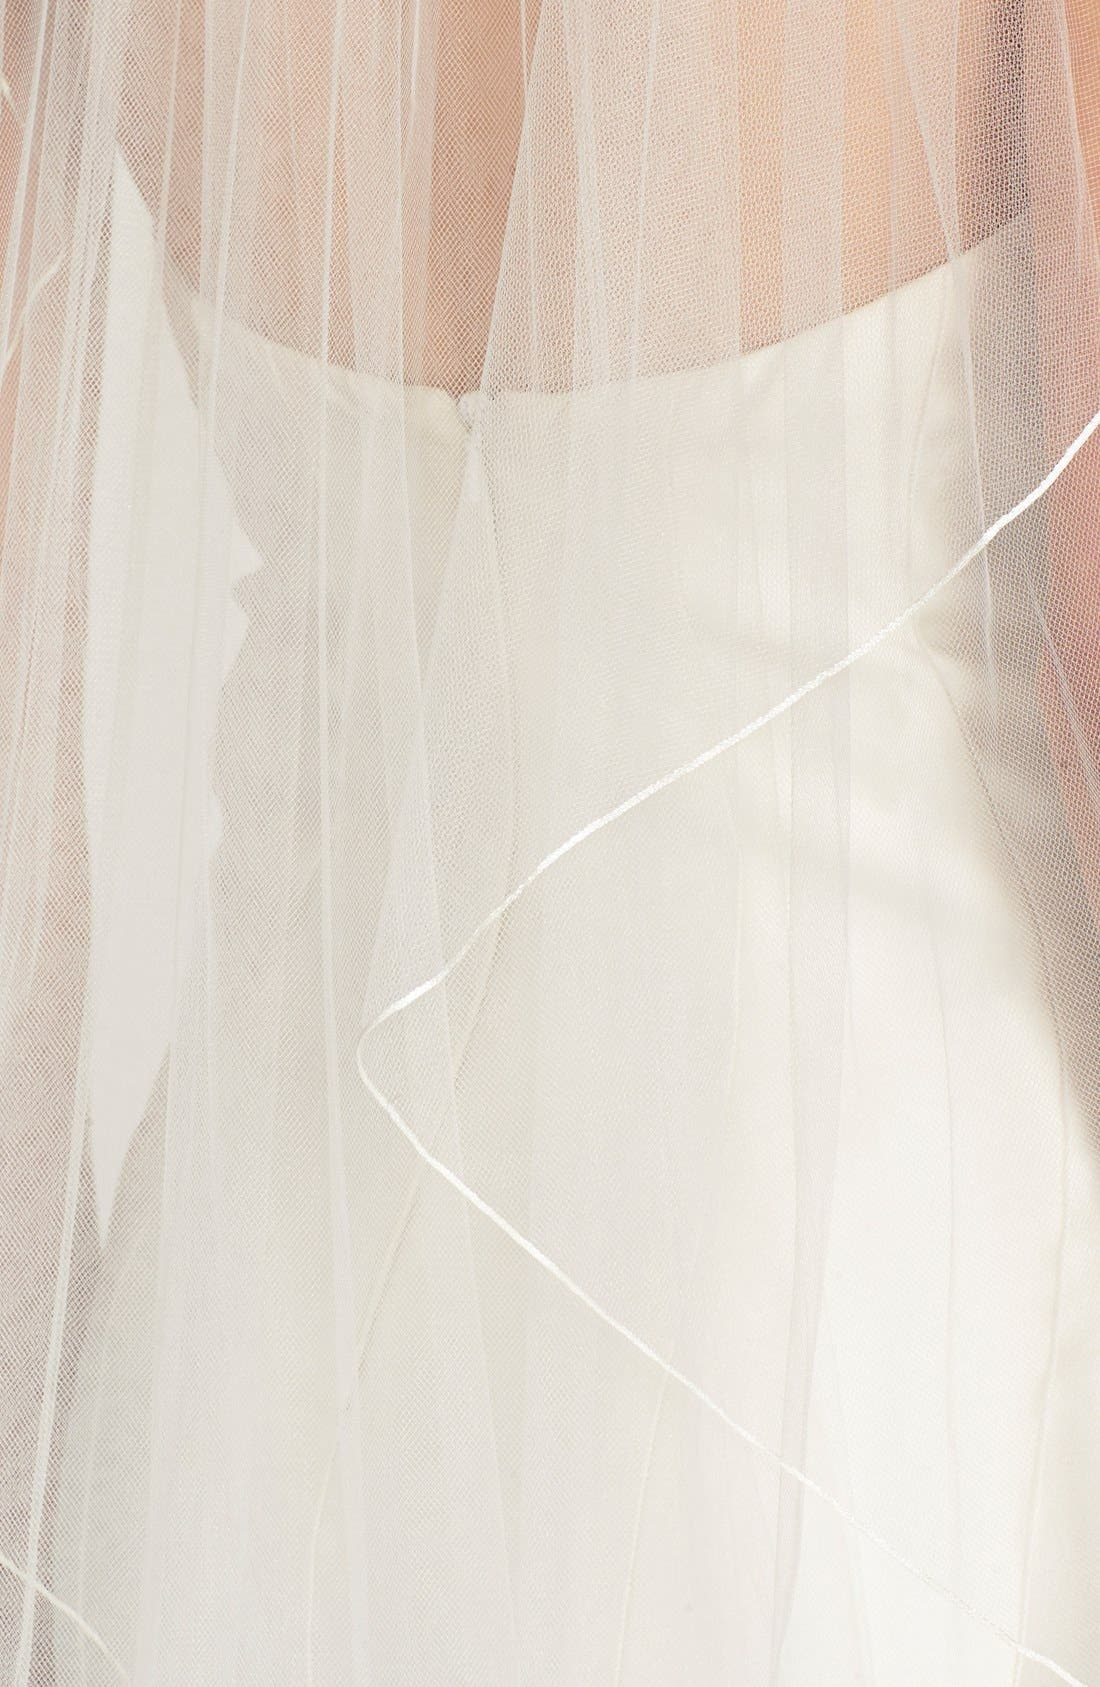 'Avalon' Cascading Waltz Length Veil,                             Alternate thumbnail 2, color,                             Light Ivory